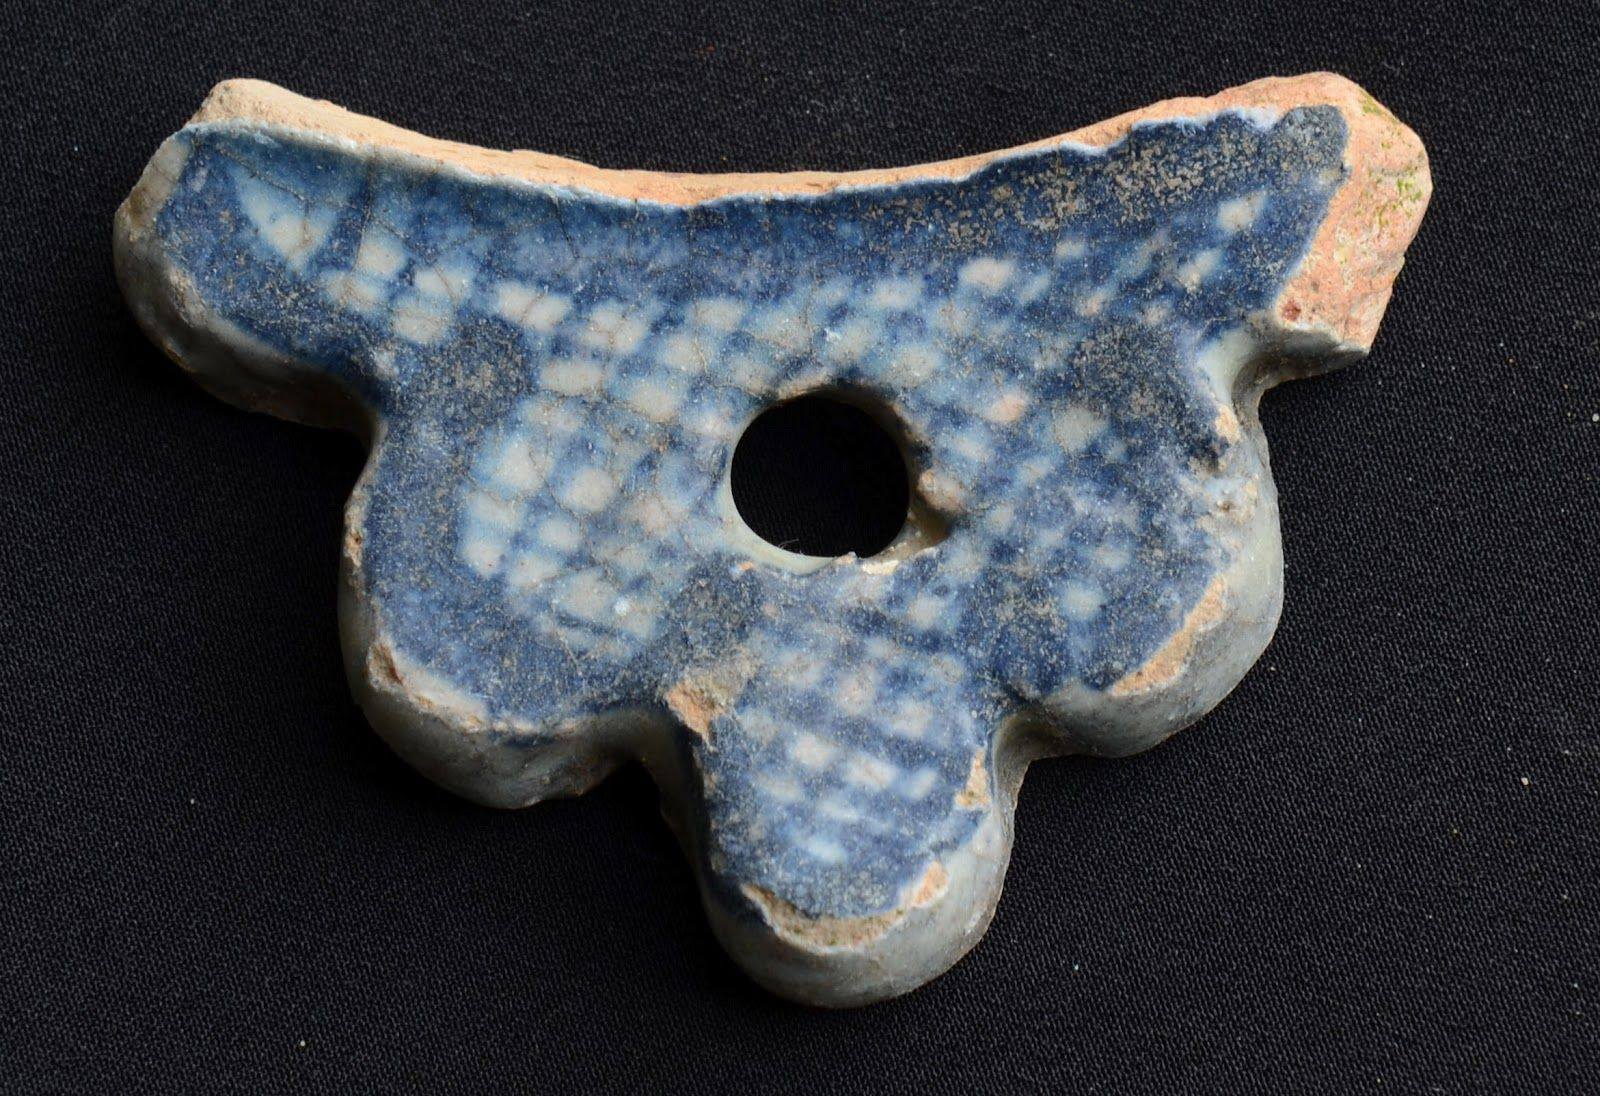 Delft porringer or bleeding bowl handle found mudlarking on the Thames foreshore London.